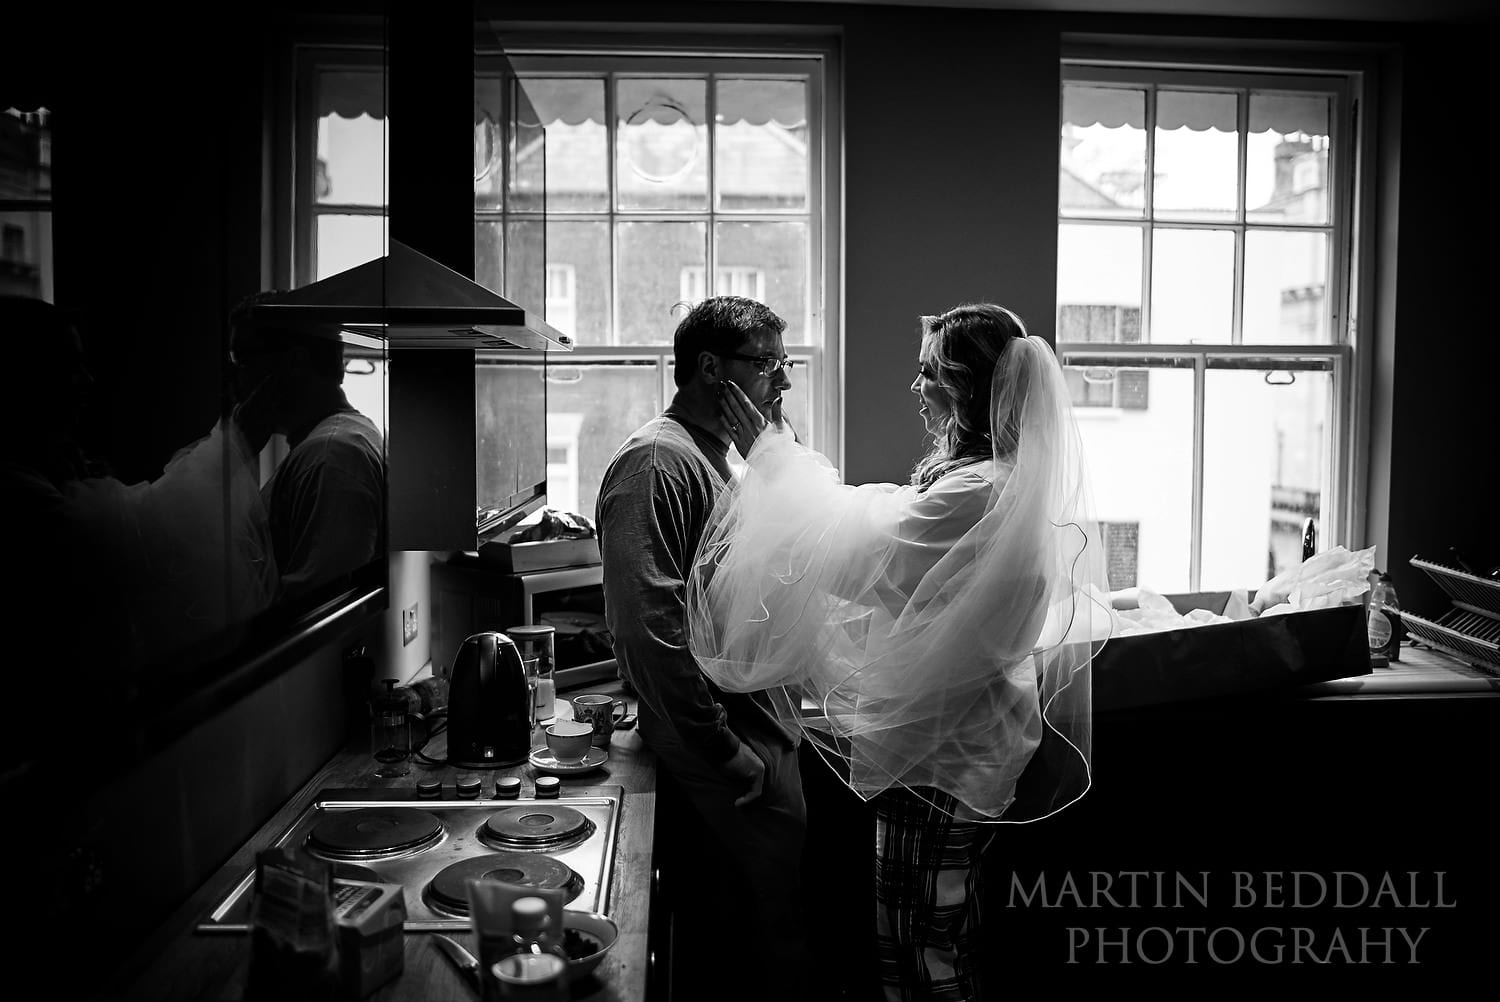 Quiet moment between a bride and her father